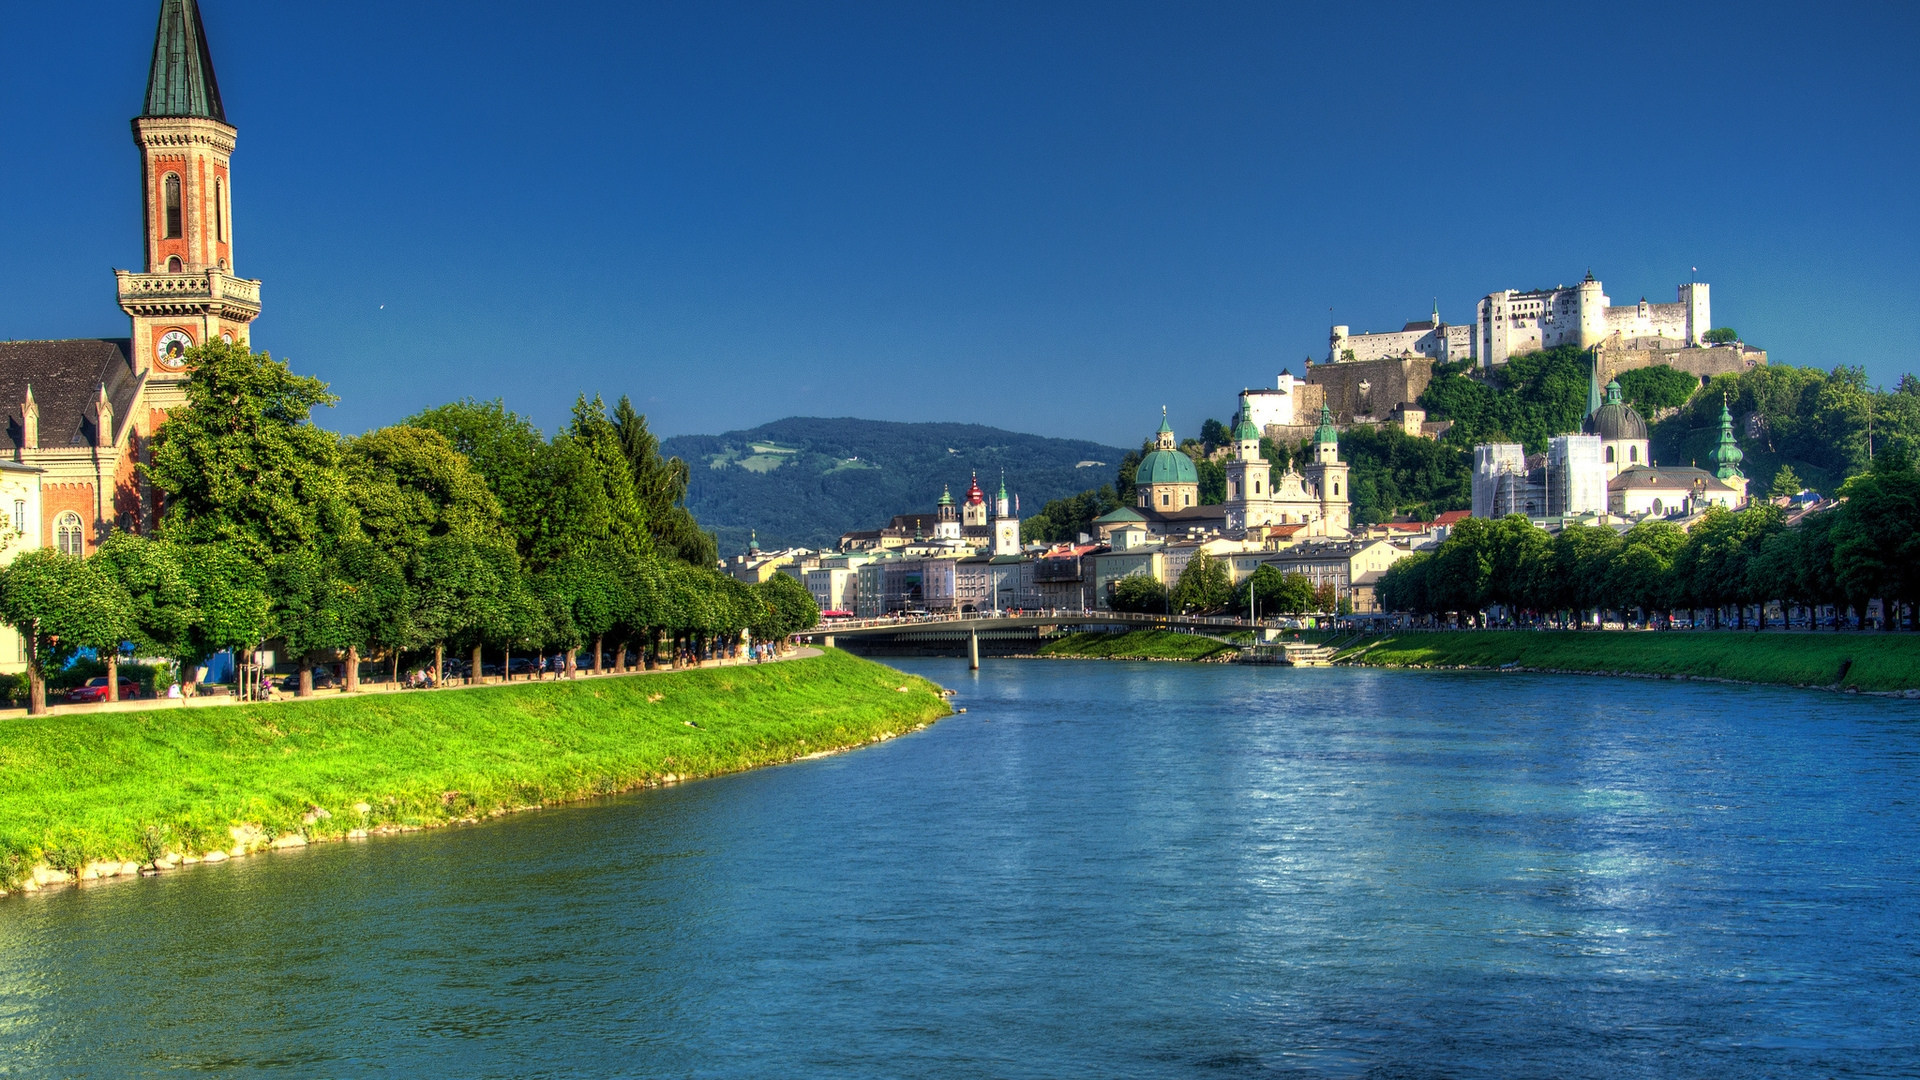 Salzach River Salzburg  for 1920 x 1080 HDTV 1080p resolution